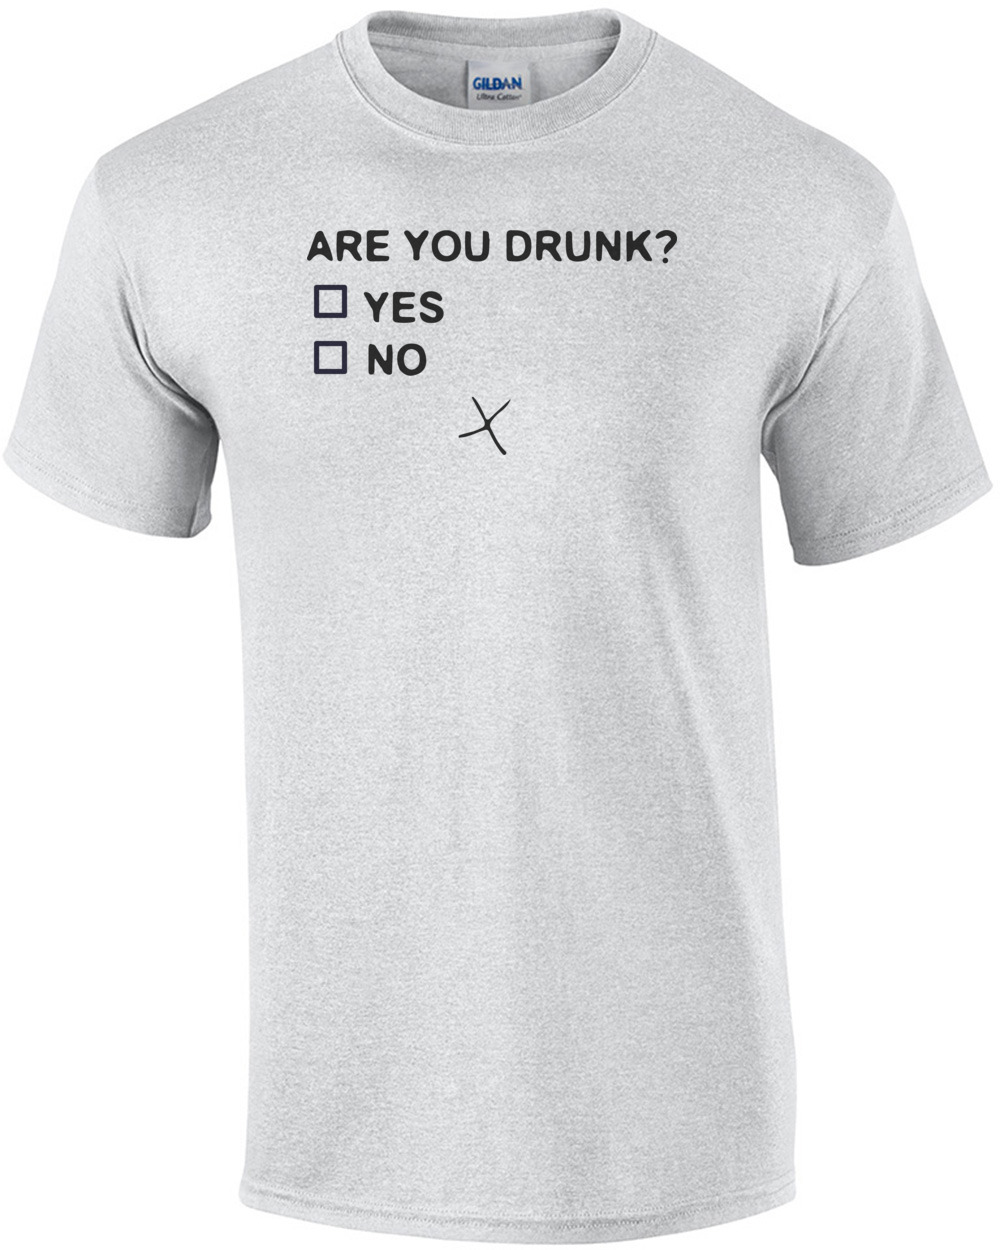 Are You Drunk Funny Drinking T Shirt